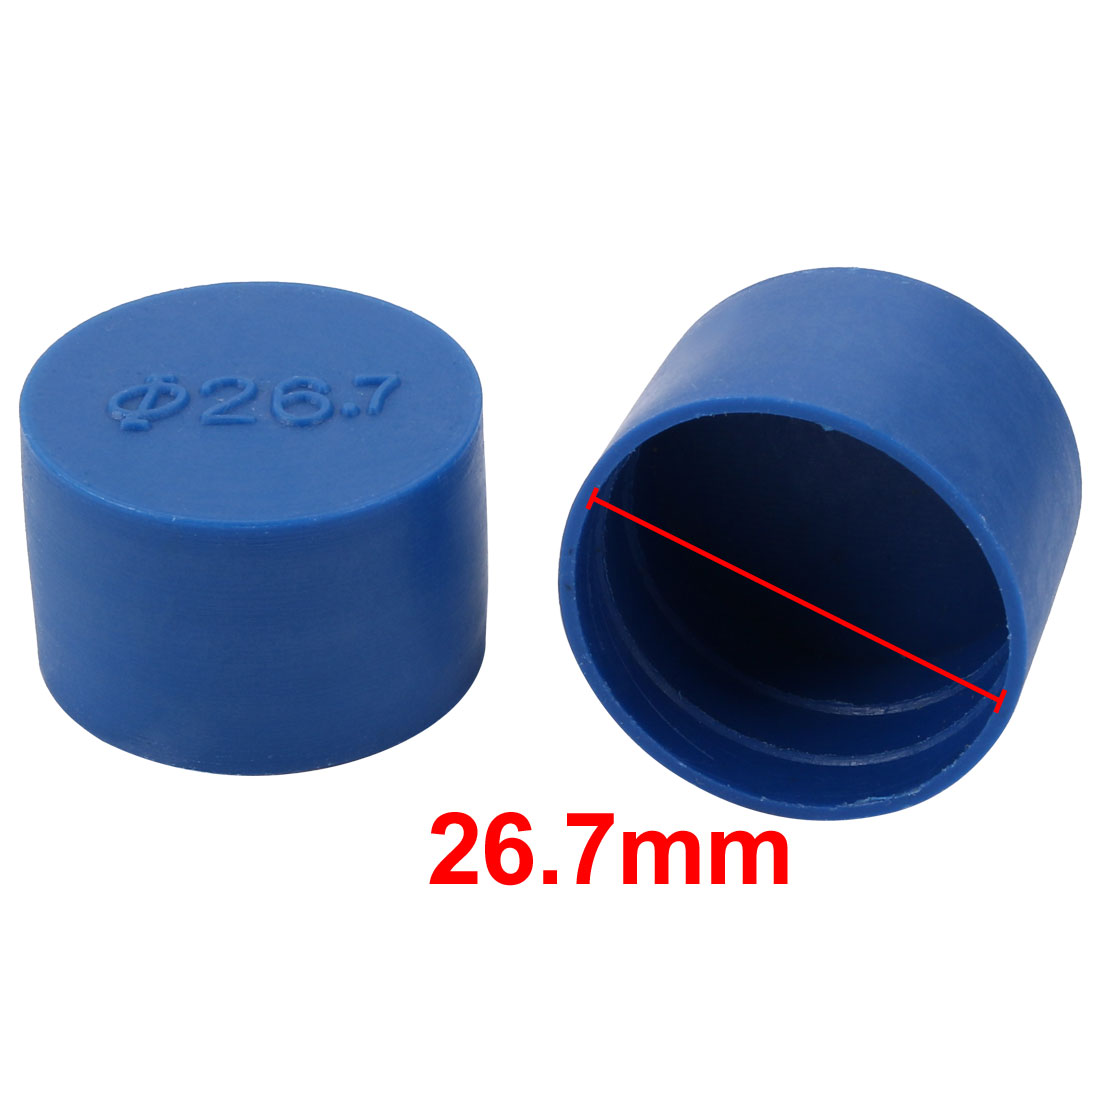 4pcs 26.7mm Inner Dia PE Plastic End Cap Bolt Thread Protector Tube Cover Blue - image 1 of 2